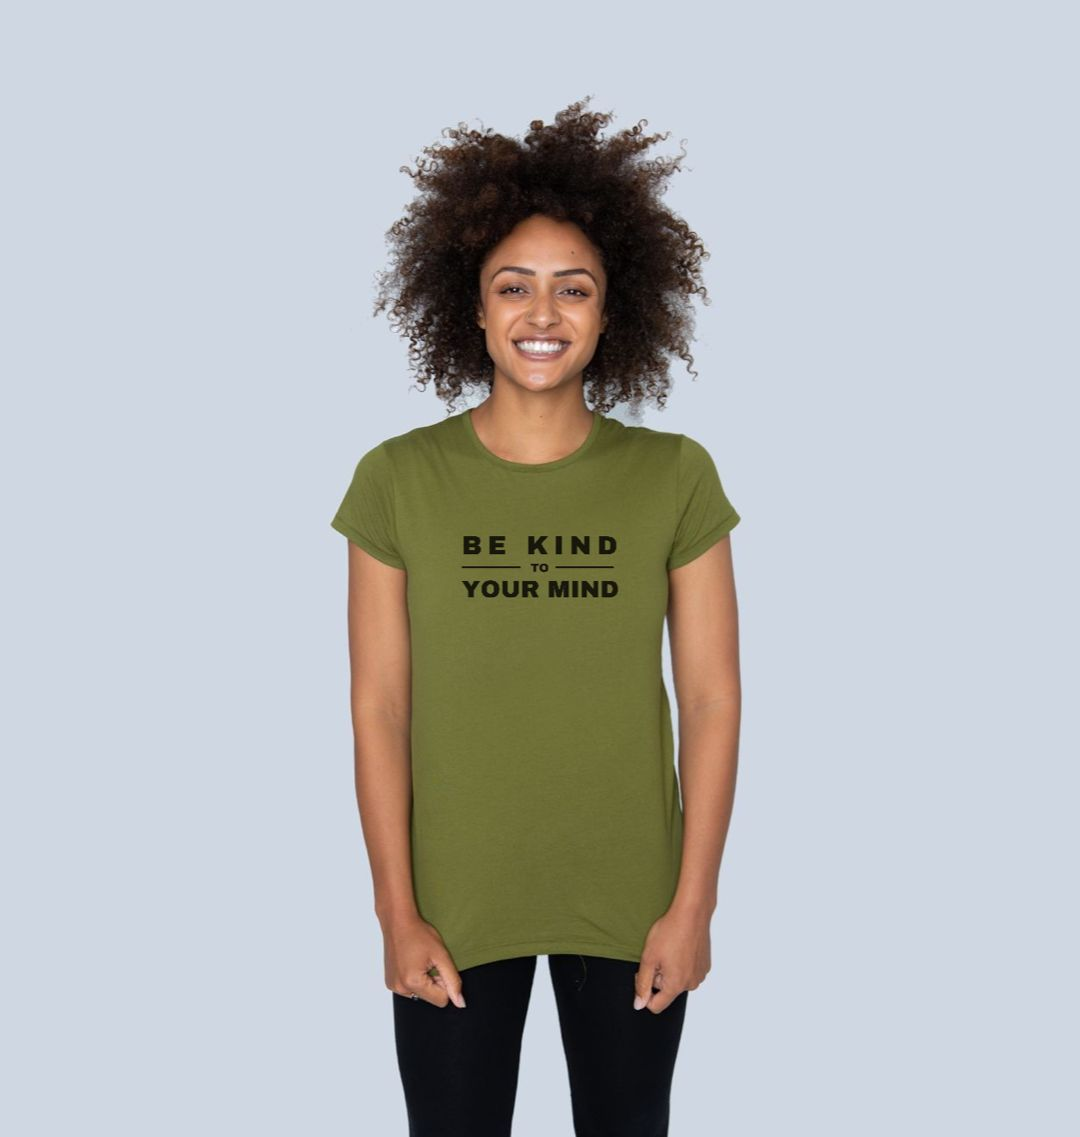 BE KIND TO YOUR MIND Womens Mental Health T-shirt Top moss green